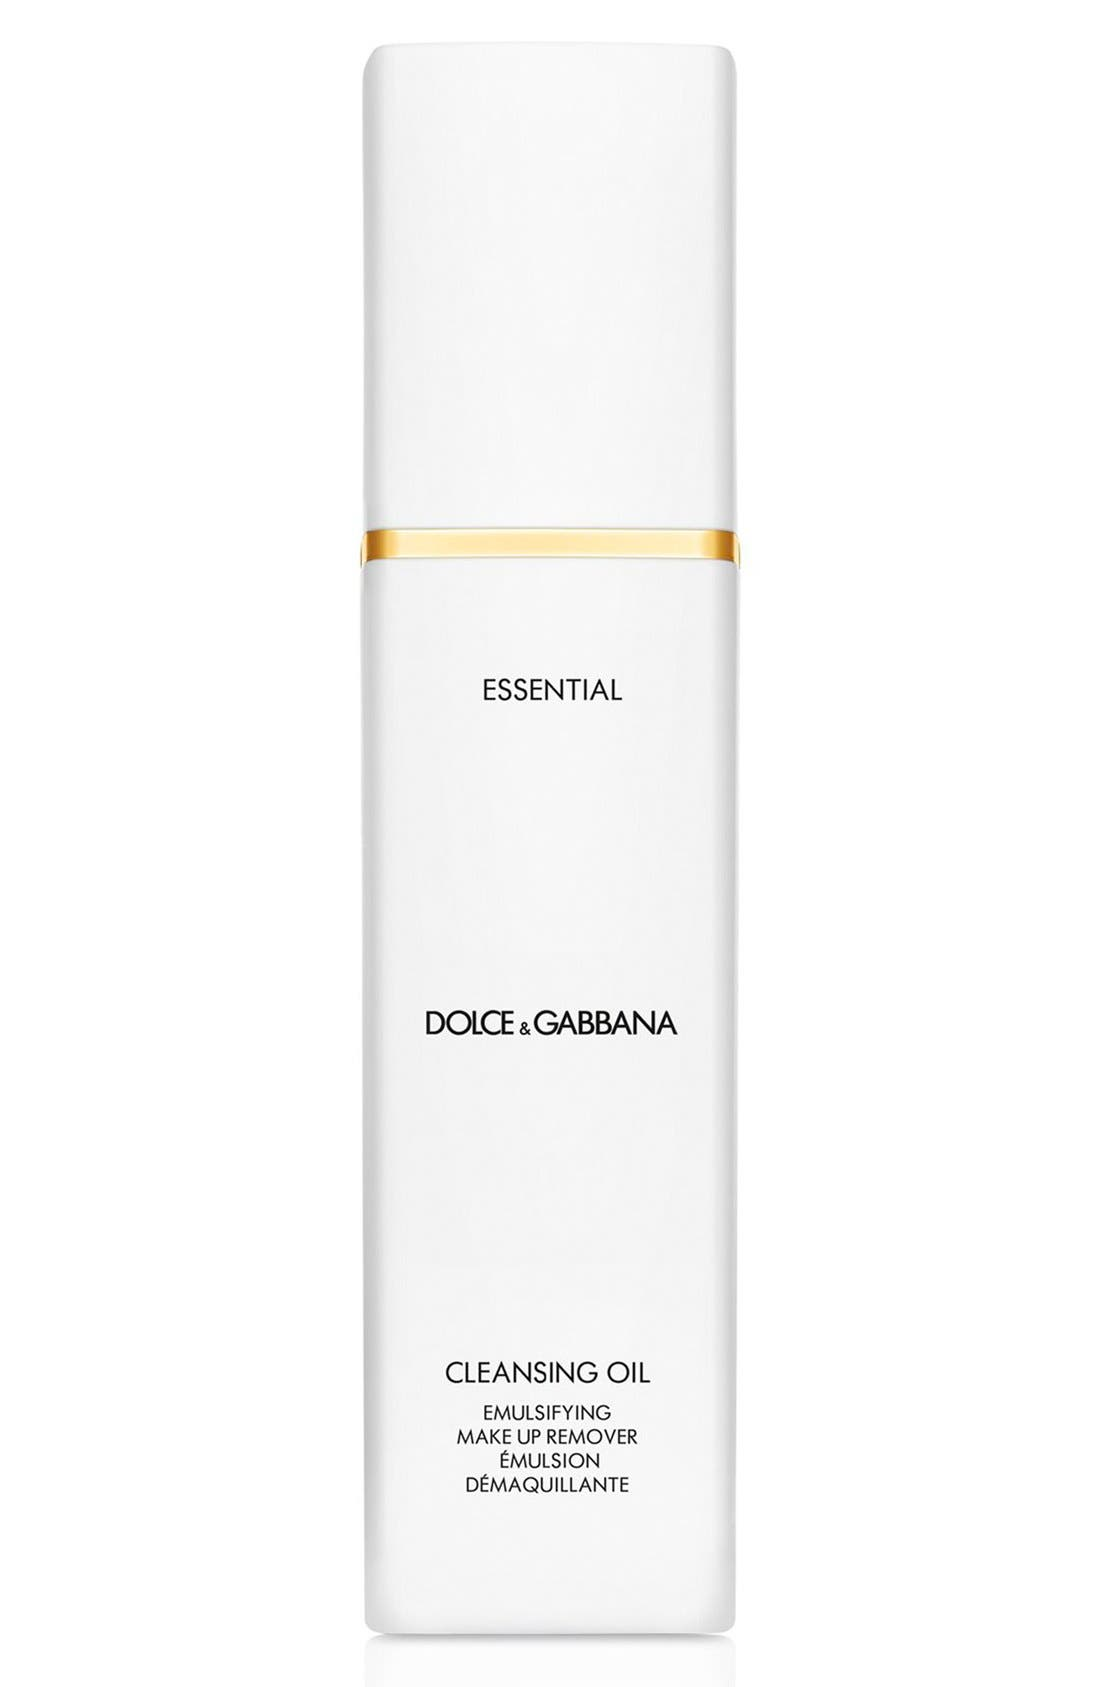 Dolce&GabbanaBeauty 'Essential' Cleansing Oil Emulsifying Makeup Remover